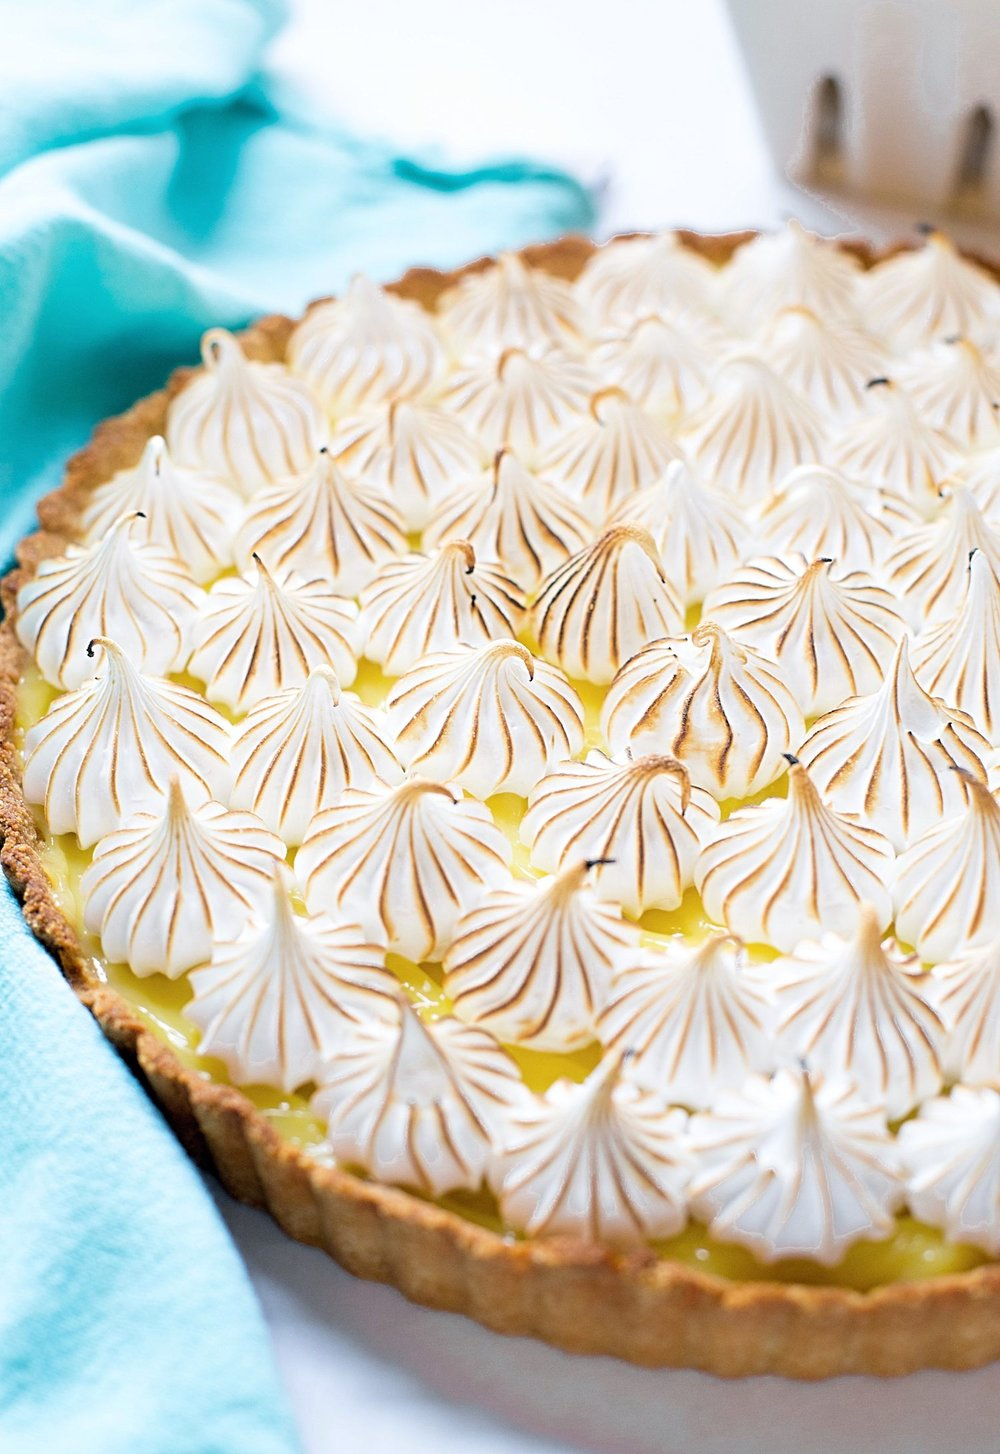 Passover Lemon Meringue Pie (Gluten-Free): tasty almond flour crust, tart and creamy lemon filling, and sweet, marshmallow-like meringue topping. | TrufflesandTrends.com